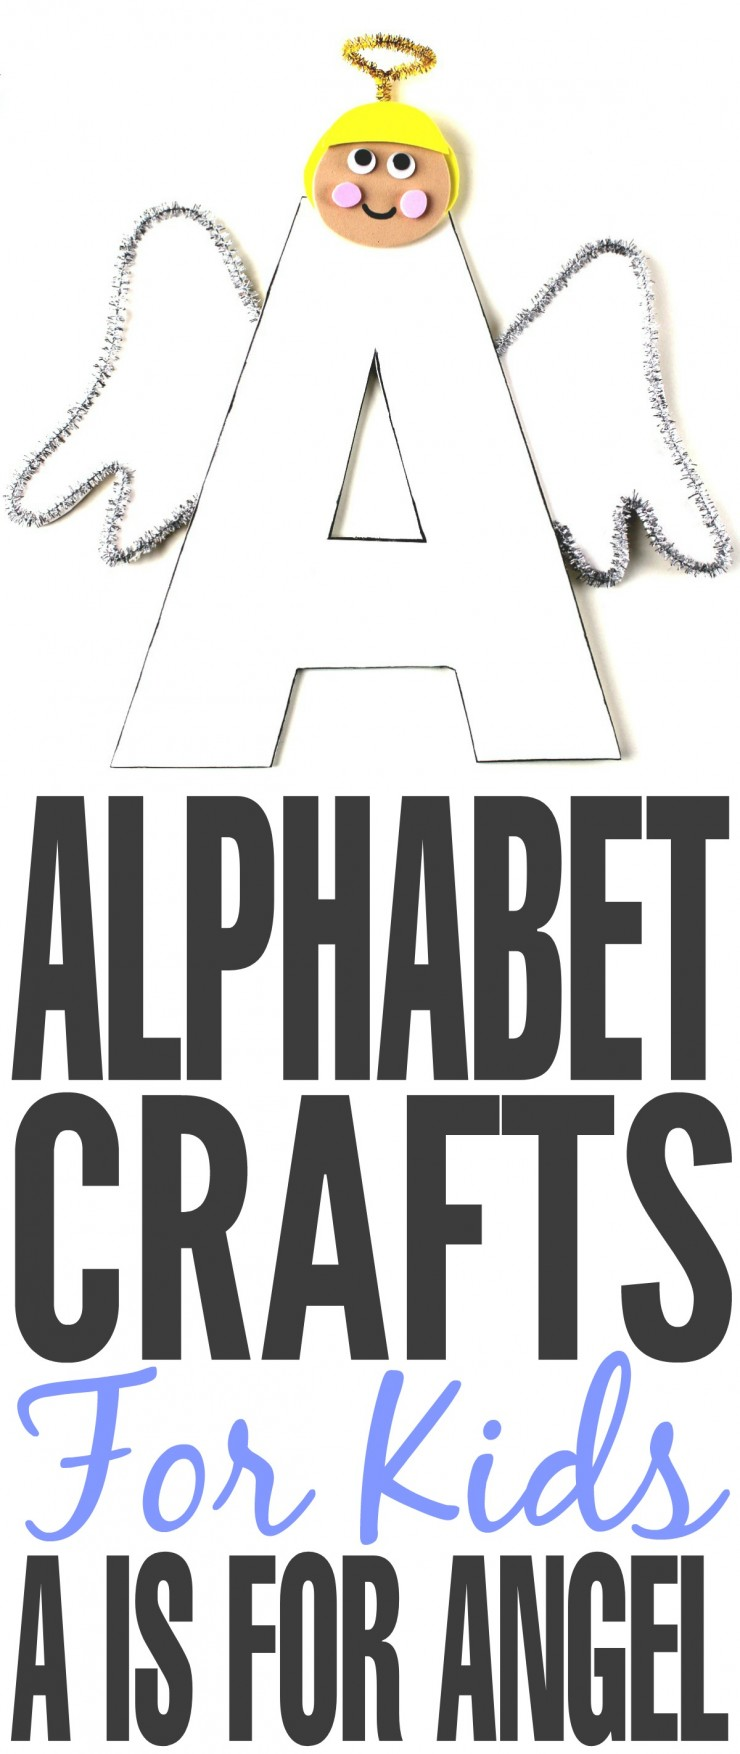 I'm going to be sharing a series of ABCs kids crafts starting this week with the letter A. These Alphabet Crafts For Kids are a fun way to introduce your child to the alphabet.